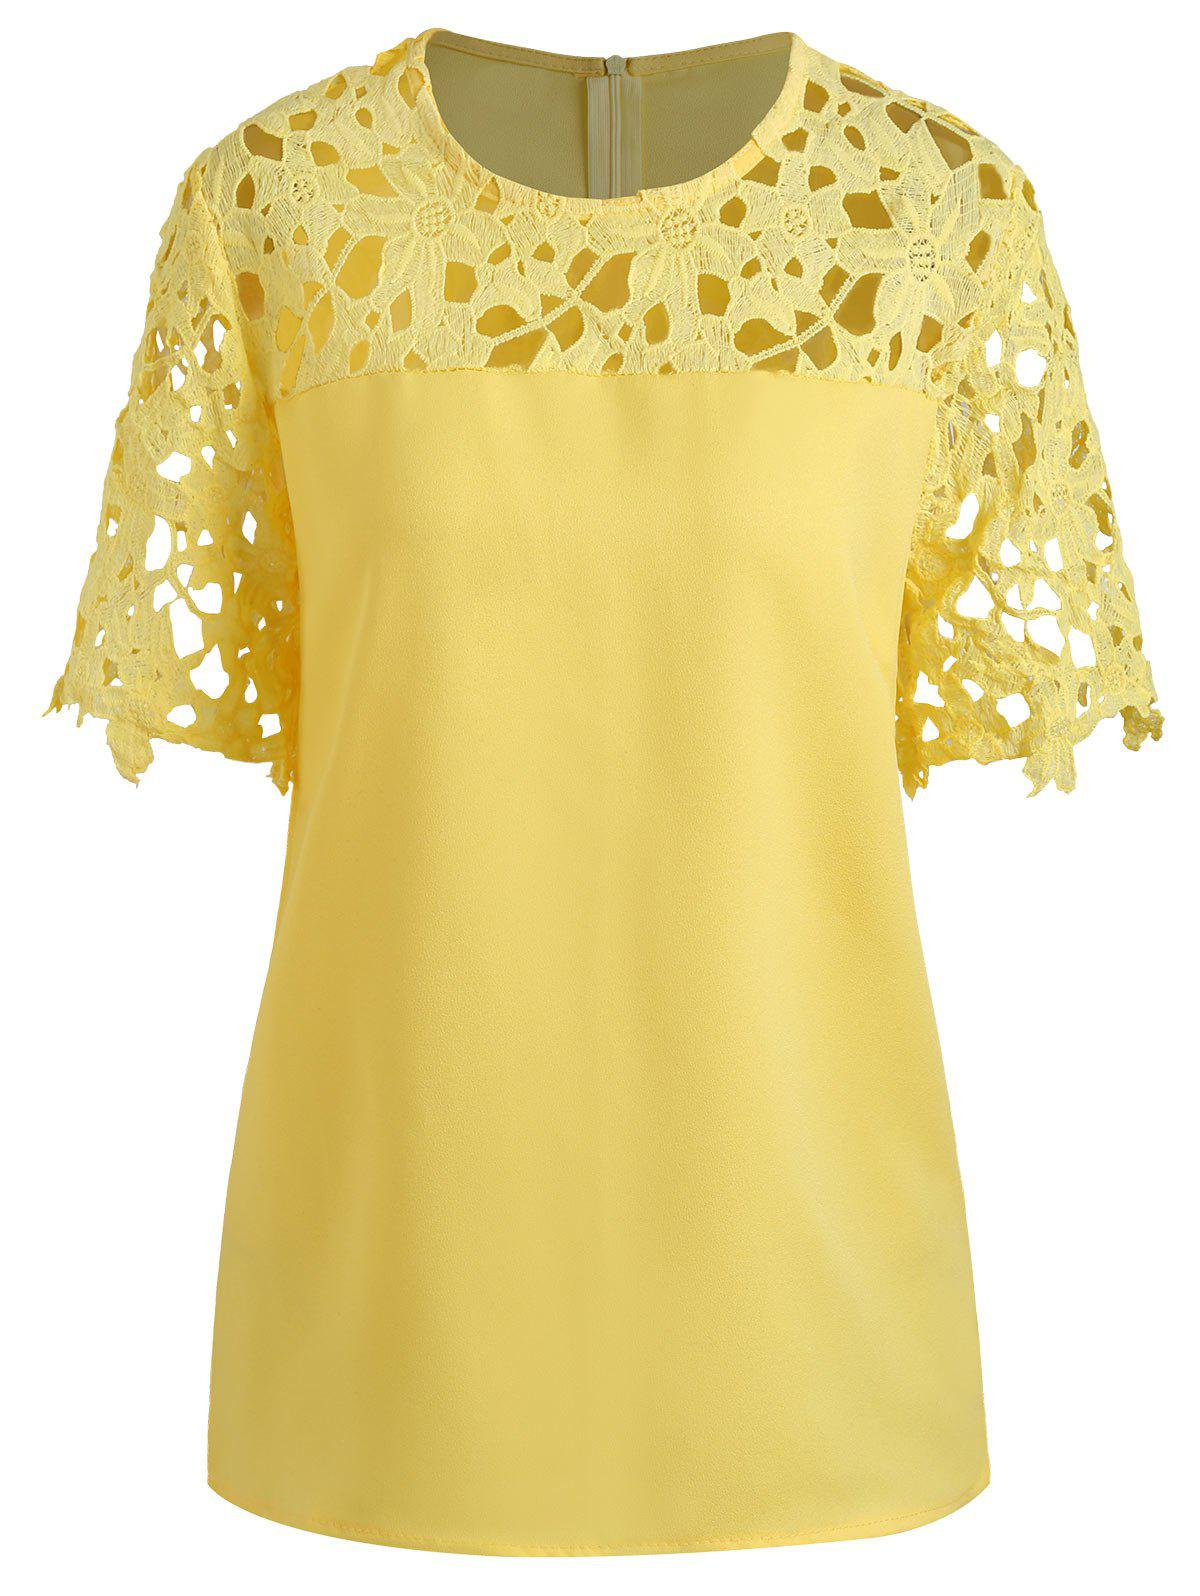 Plus Size Openwork Lace Insert Top - YELLOW 4XL